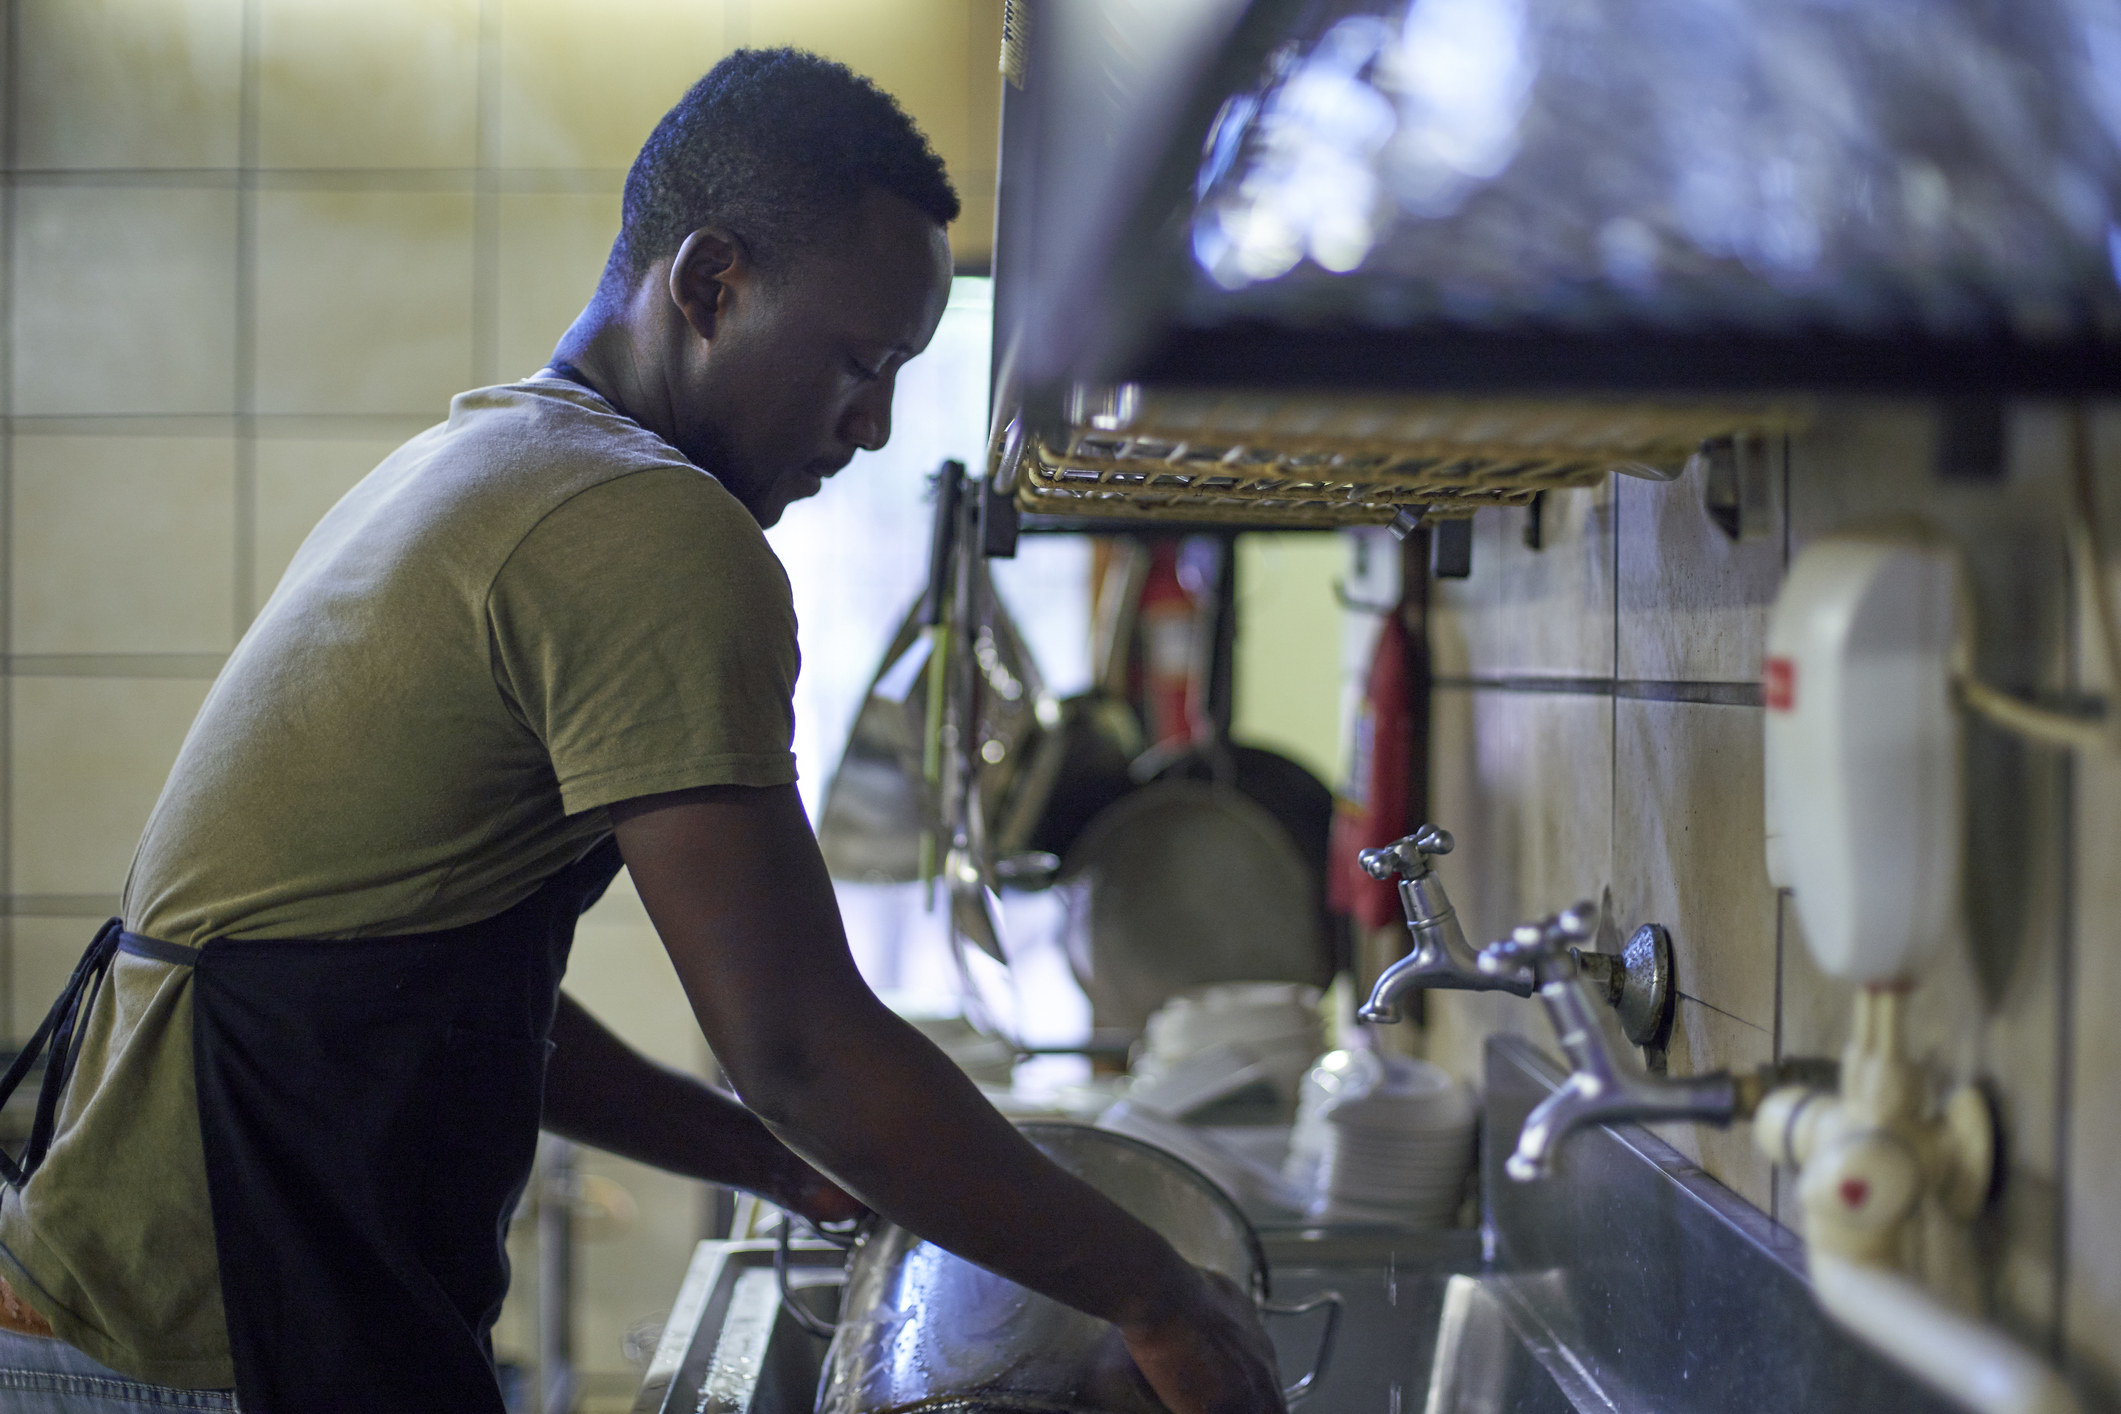 a person washing dishes